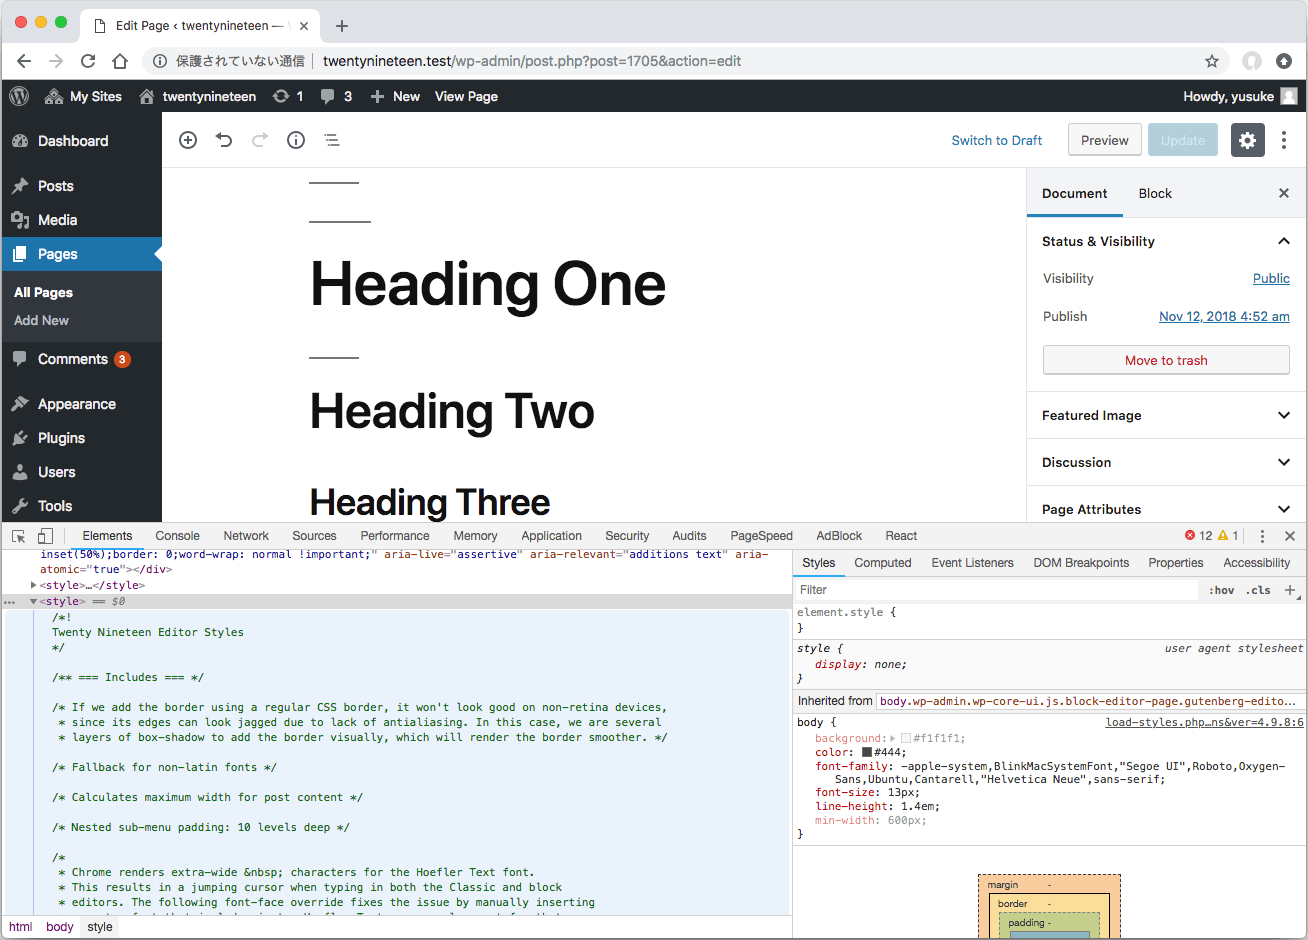 gutenberg-editor-style2.png